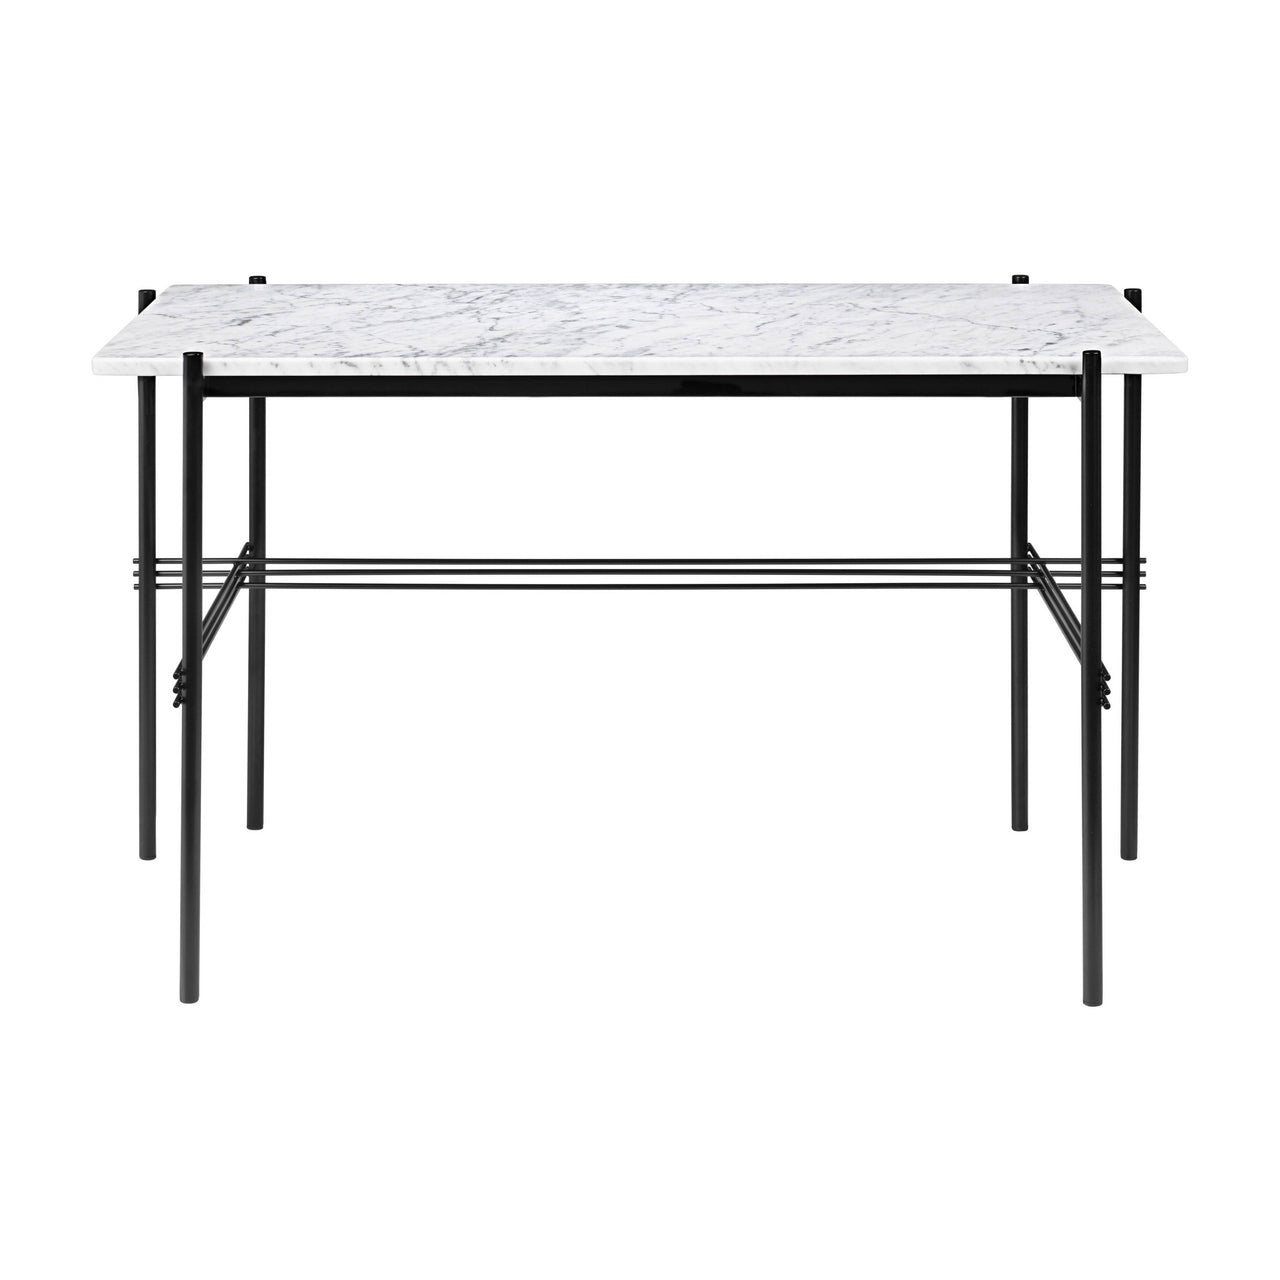 TS Desk: White Carrara Marble